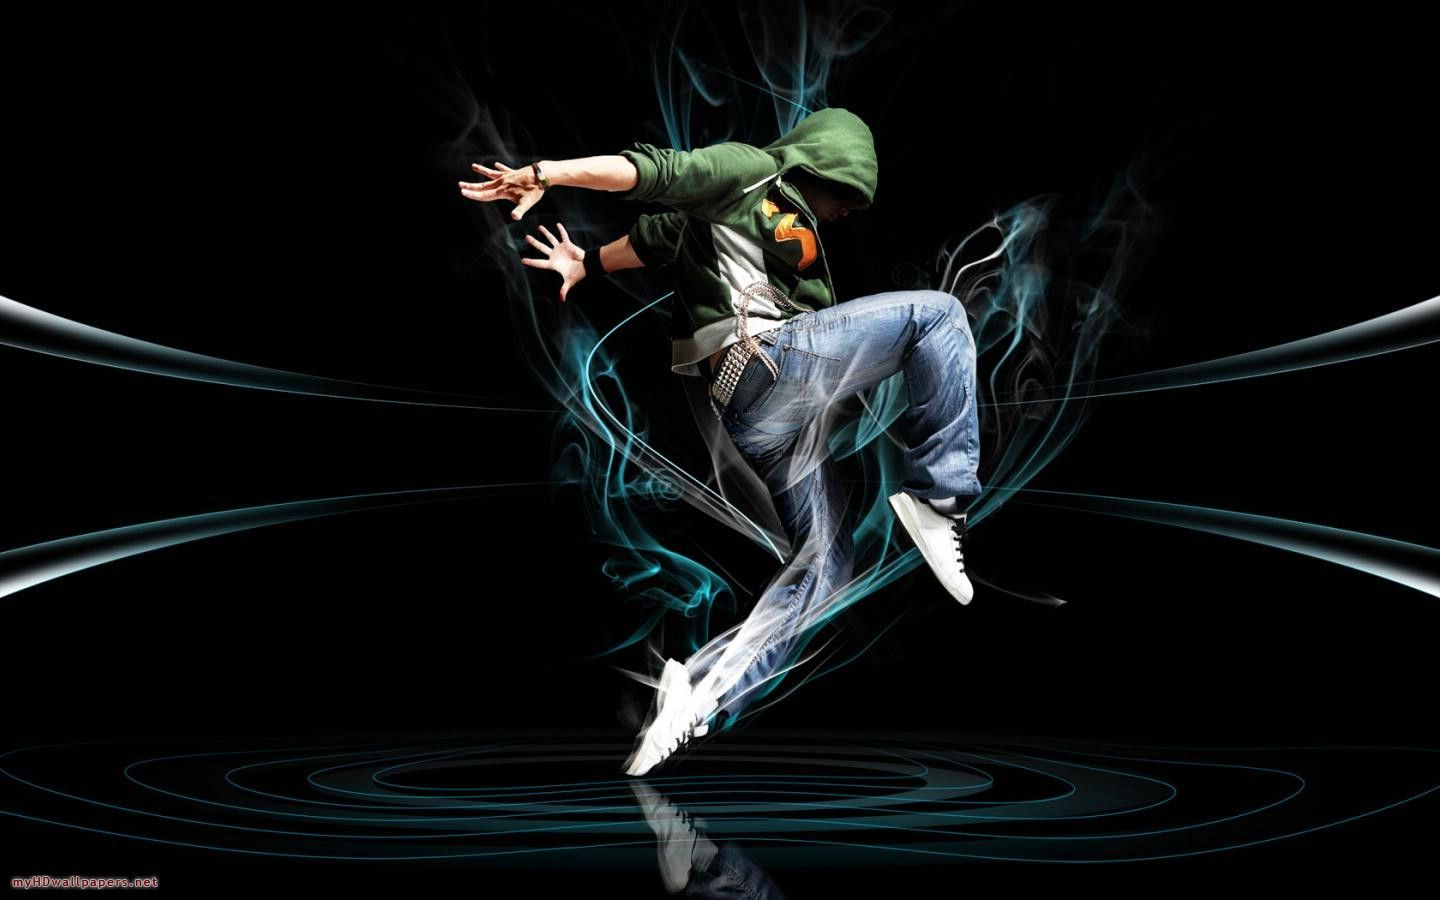 Dance Wallpaper Free Download